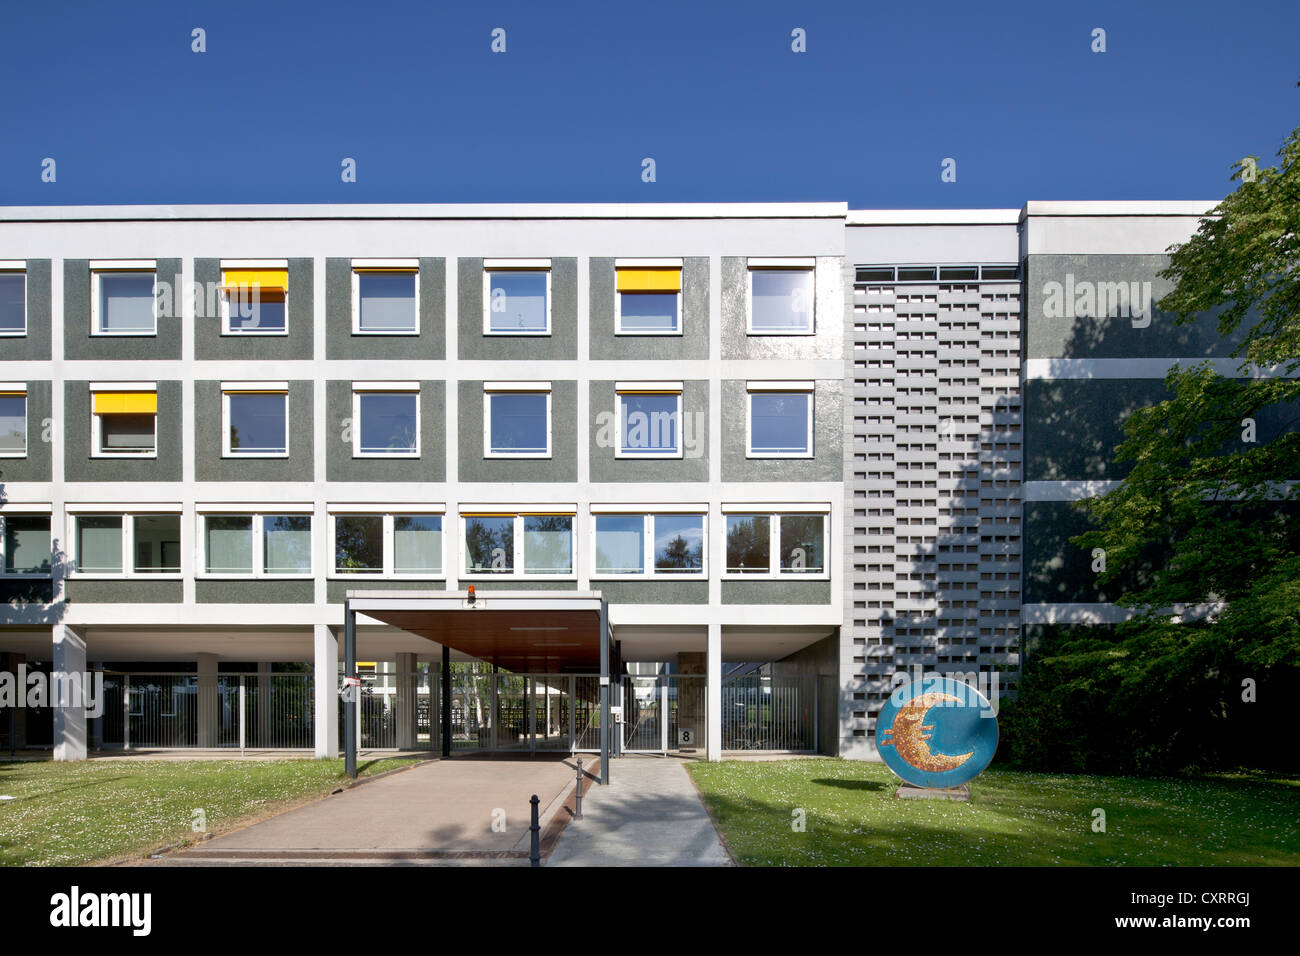 Hessian Ministry of Finance, Wiesbaden, Hesse, Germany, Europe, PublicGround - Stock Image